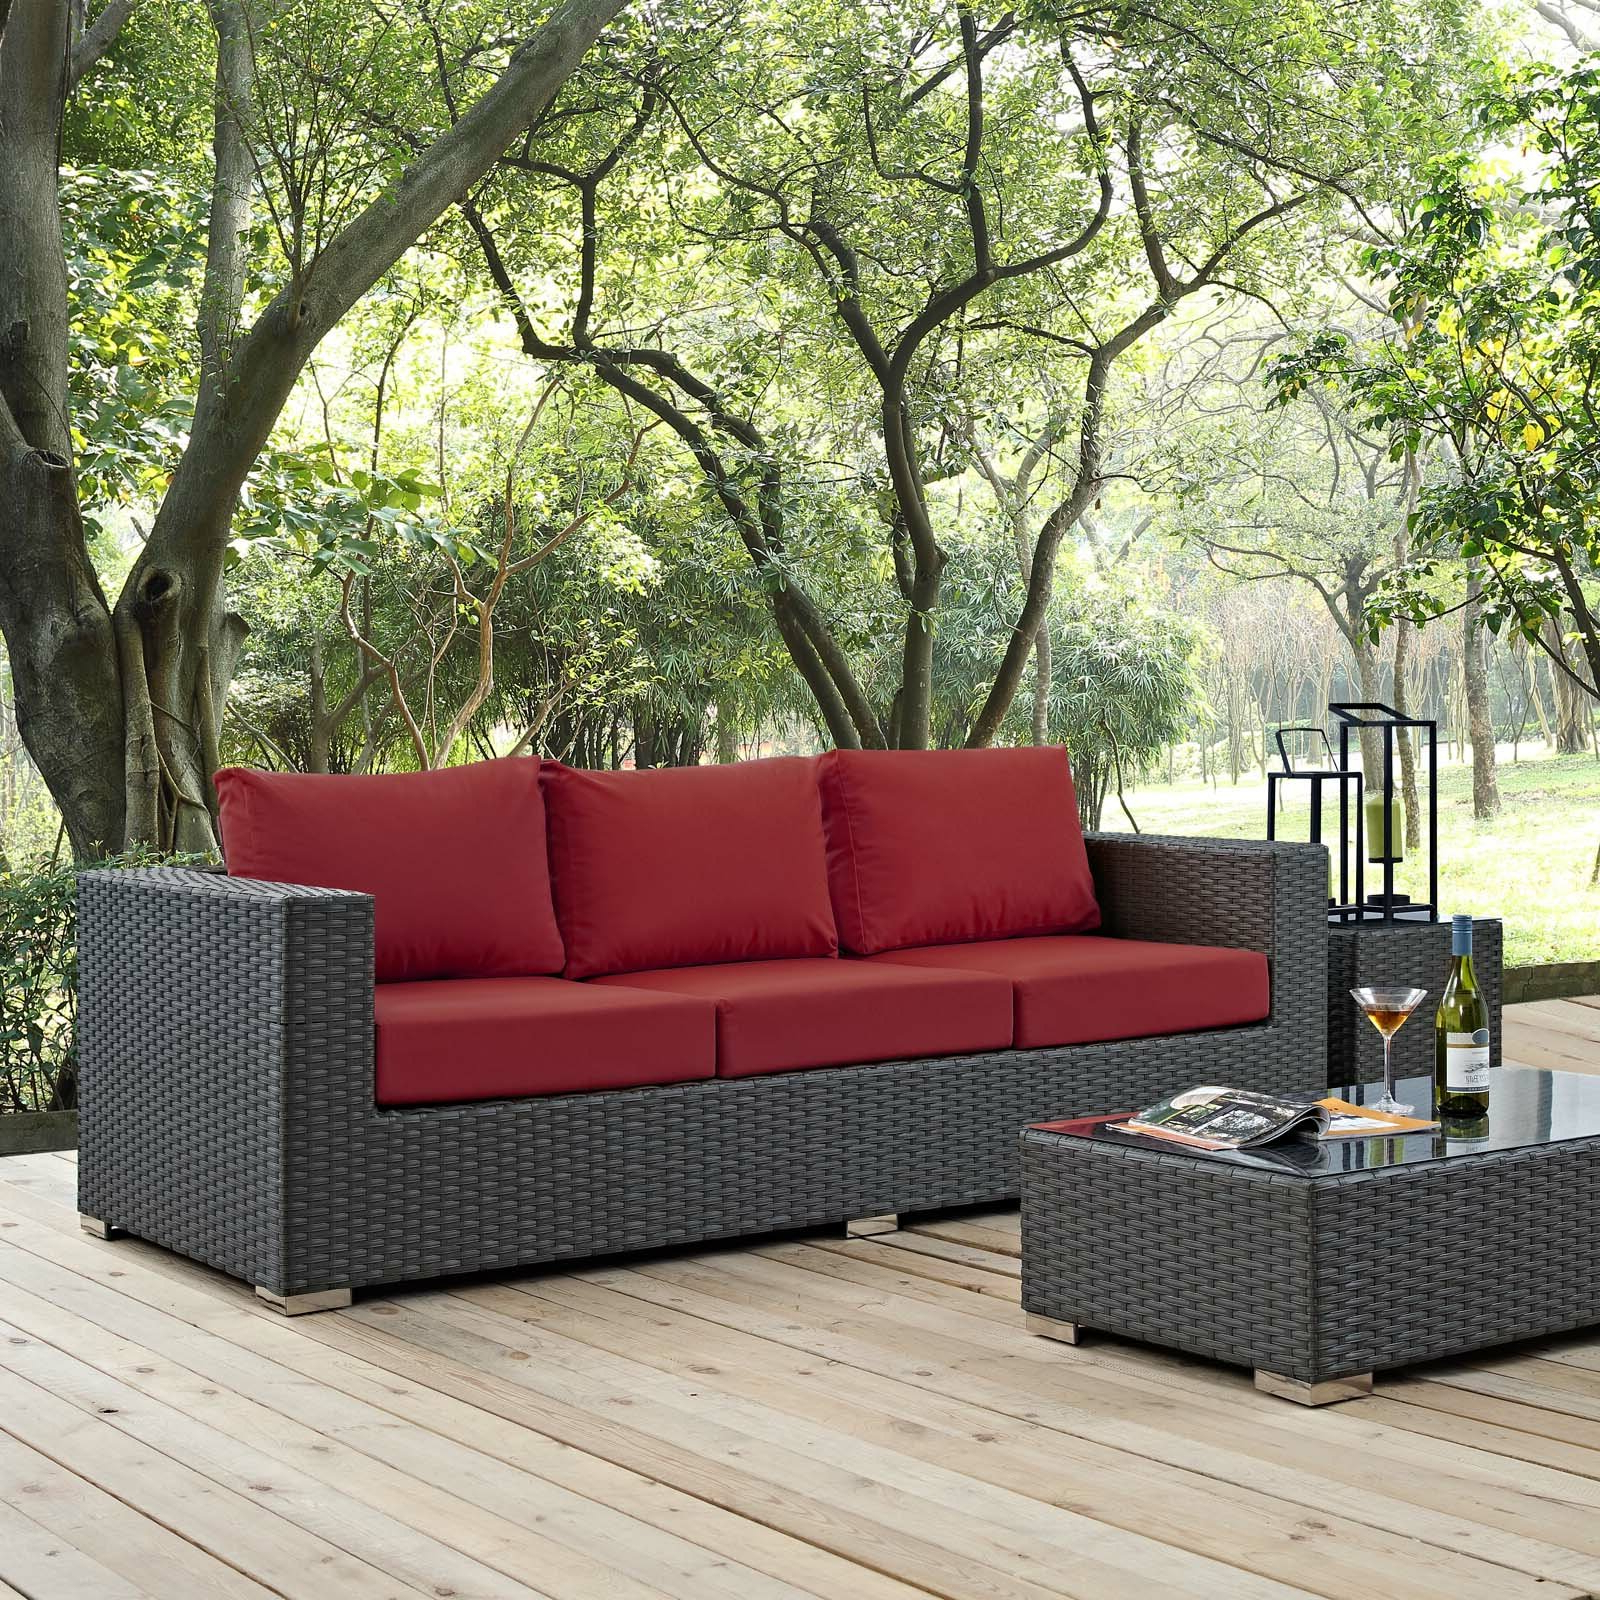 Tripp Sofa With Cushions Throughout 2019 Tripp Sofas With Cushions (View 2 of 25)